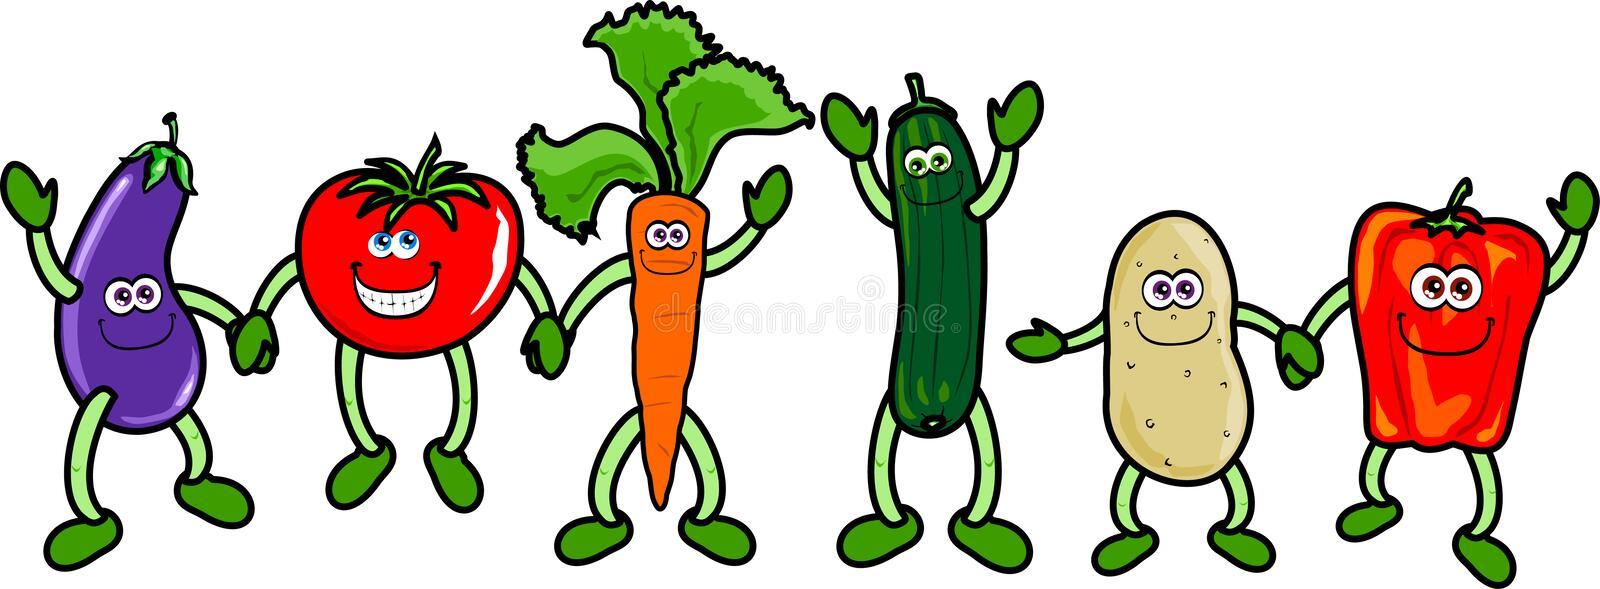 Funny vegetables royalty free stock image